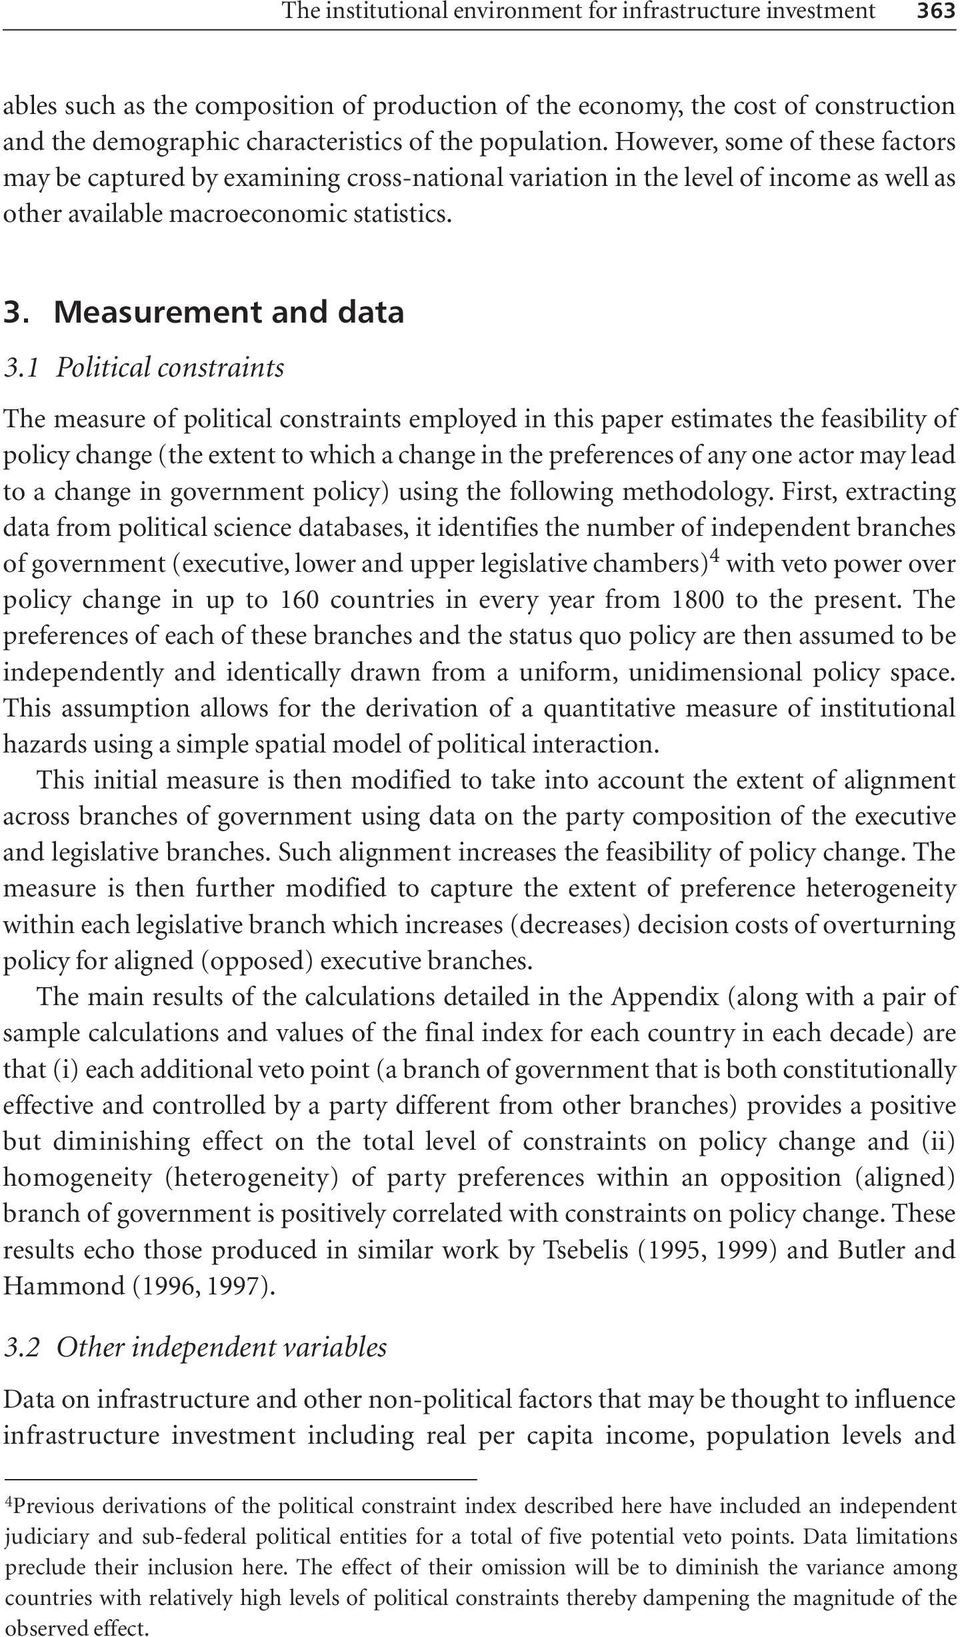 1 Political constraints The measure of political constraints employed in this paper estimates the feasibility of policy change (the extent to which a change in the preferences of any one actor may